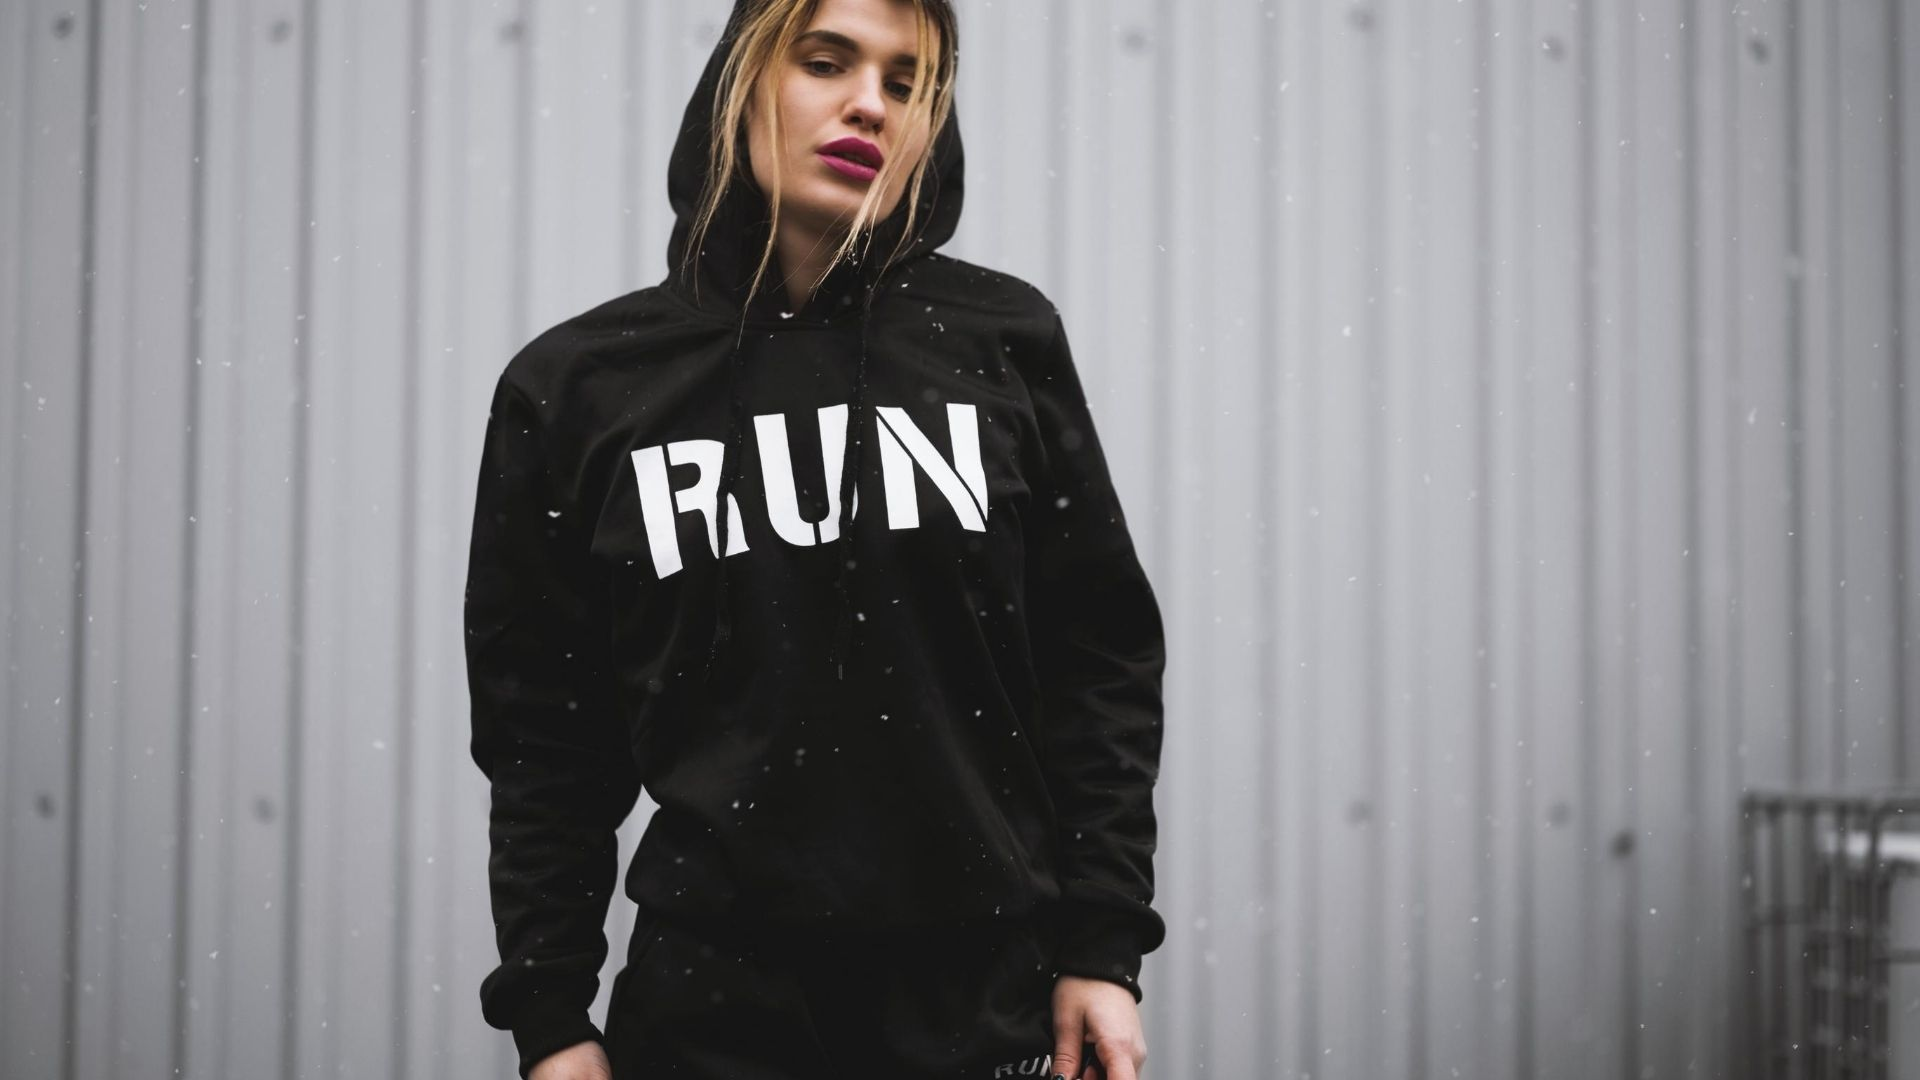 Woman wearing a black hoodie with the word 'run' written across the front.